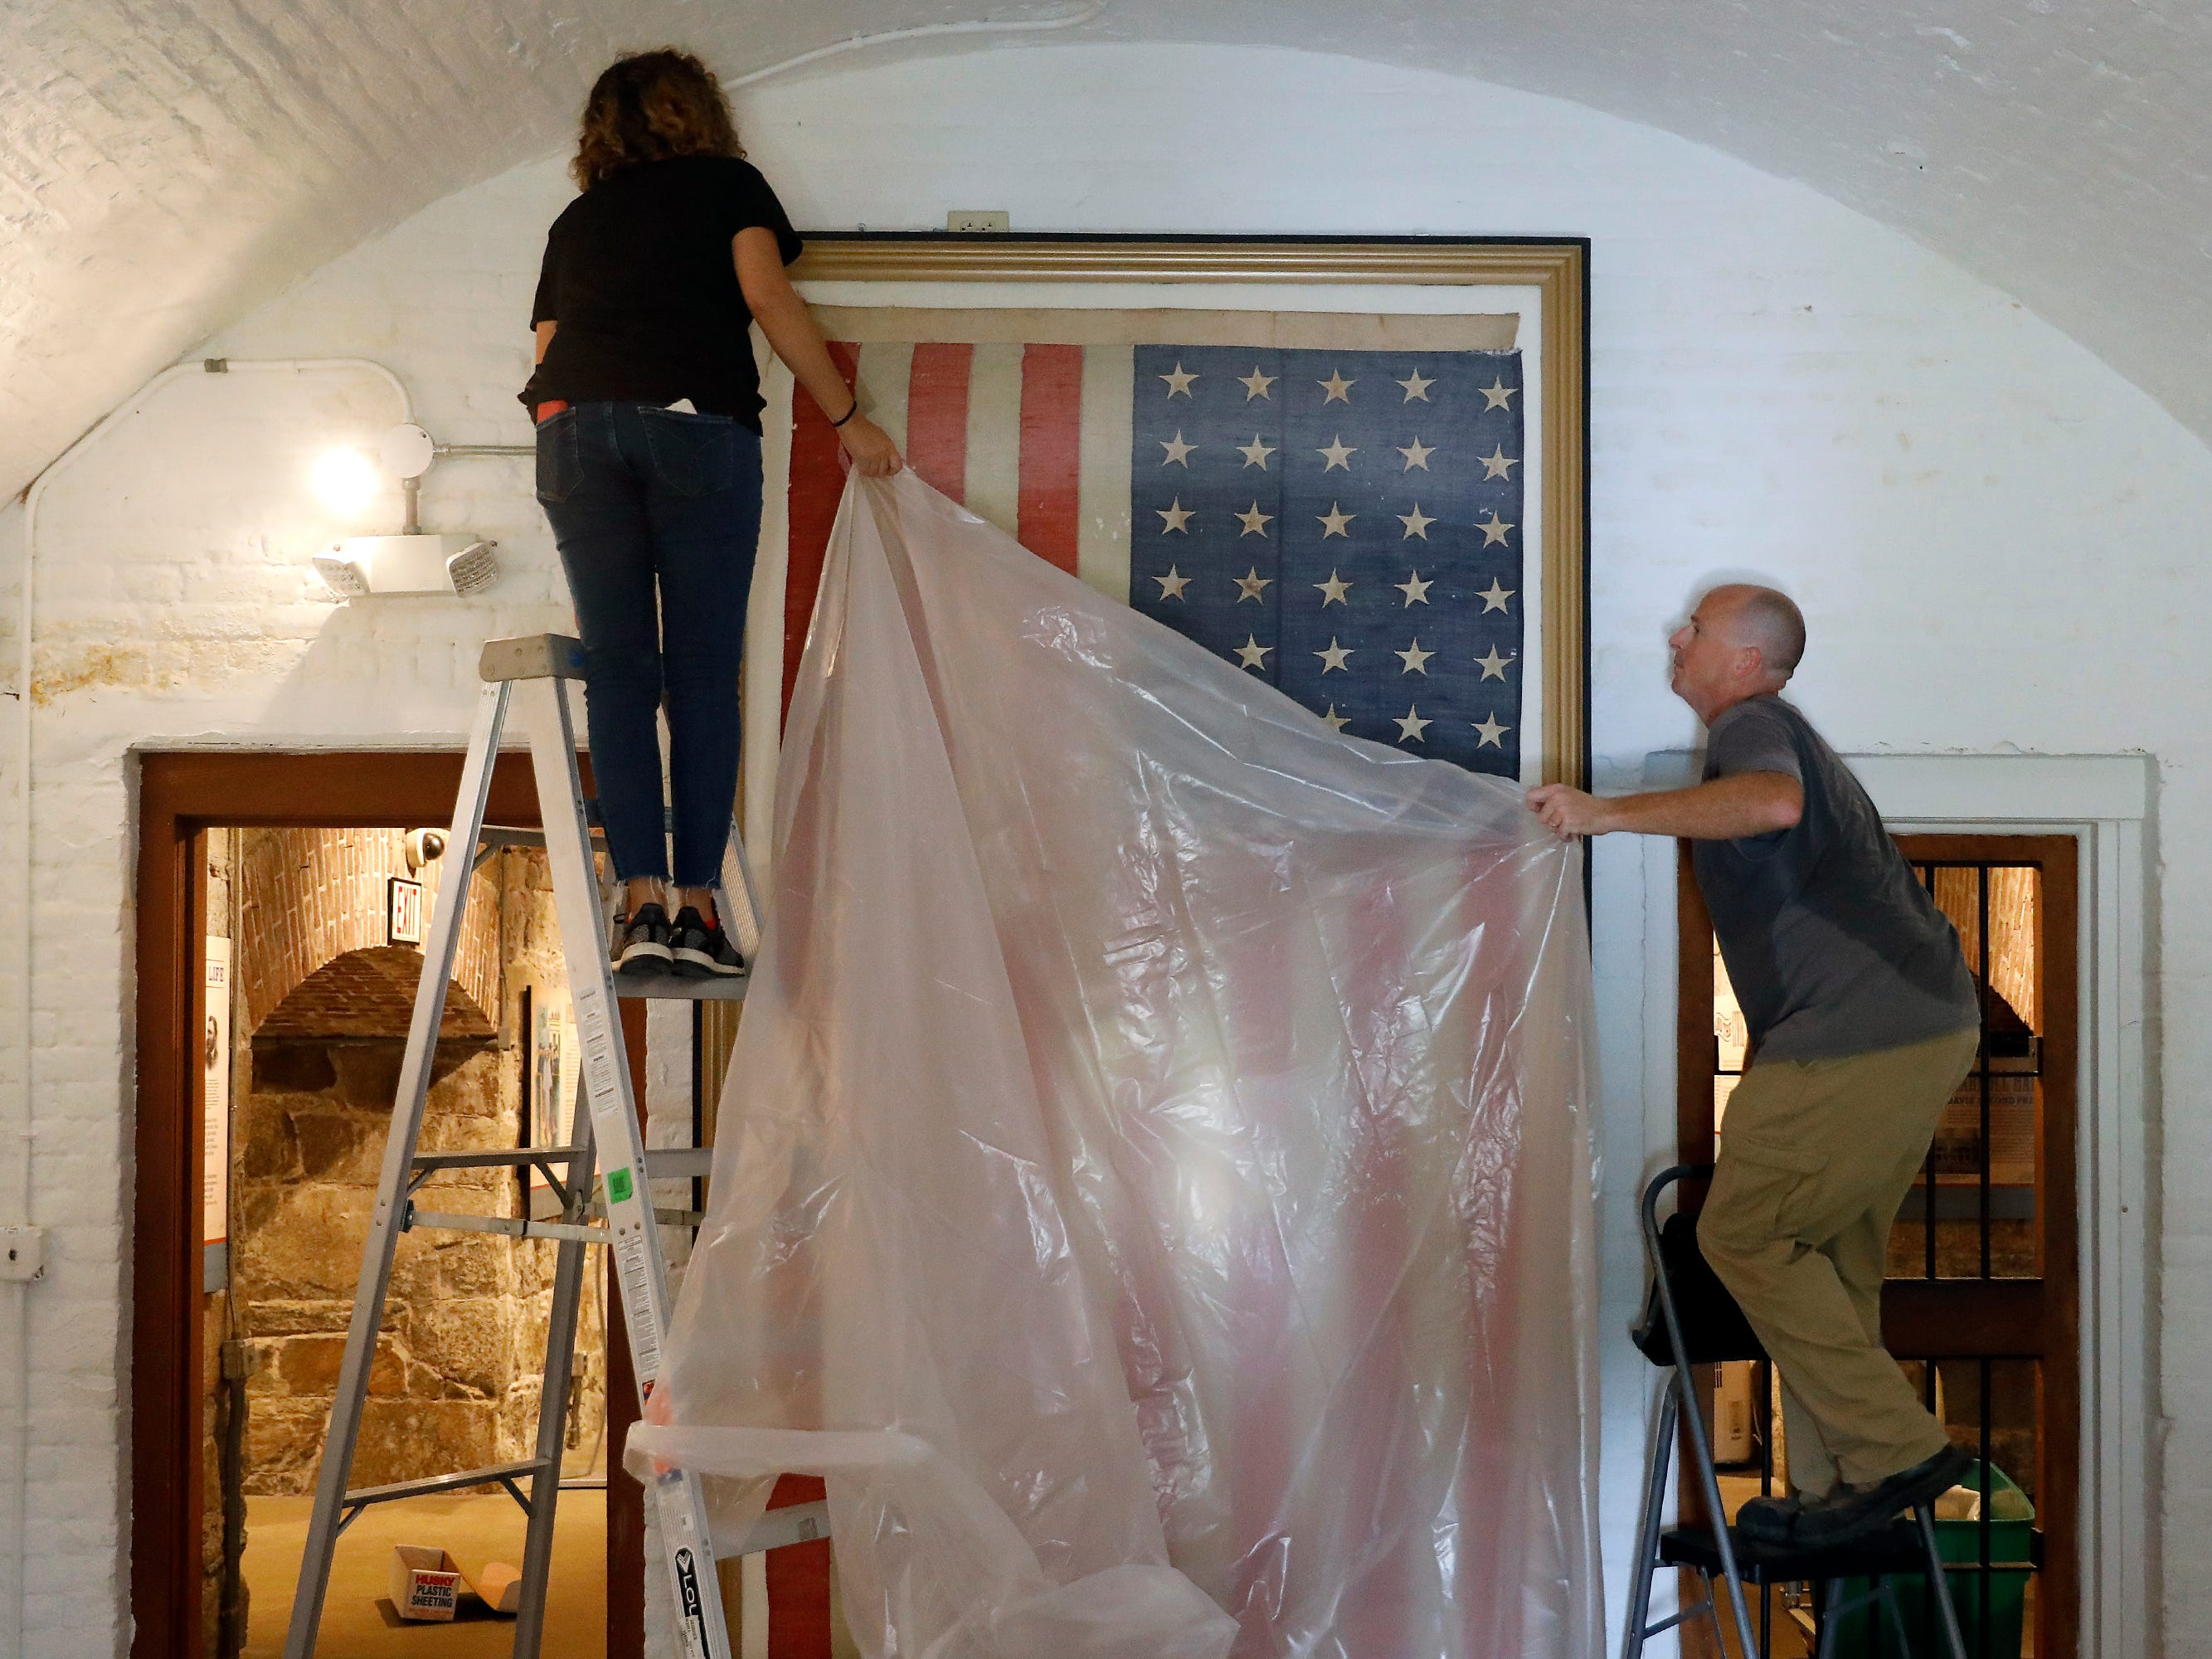 Veronica Gallardo, left, and Robert Kelly place a plastic tarp over the American Flag that hung in the cell of Jefferson Davis inside the Casemate Museum on Fort Monroe, Tuesday, Sept. 11, 2018, in Hampton, Va. The staff is preparing for rising waters and other possible flooding due to Hurricane Florence.